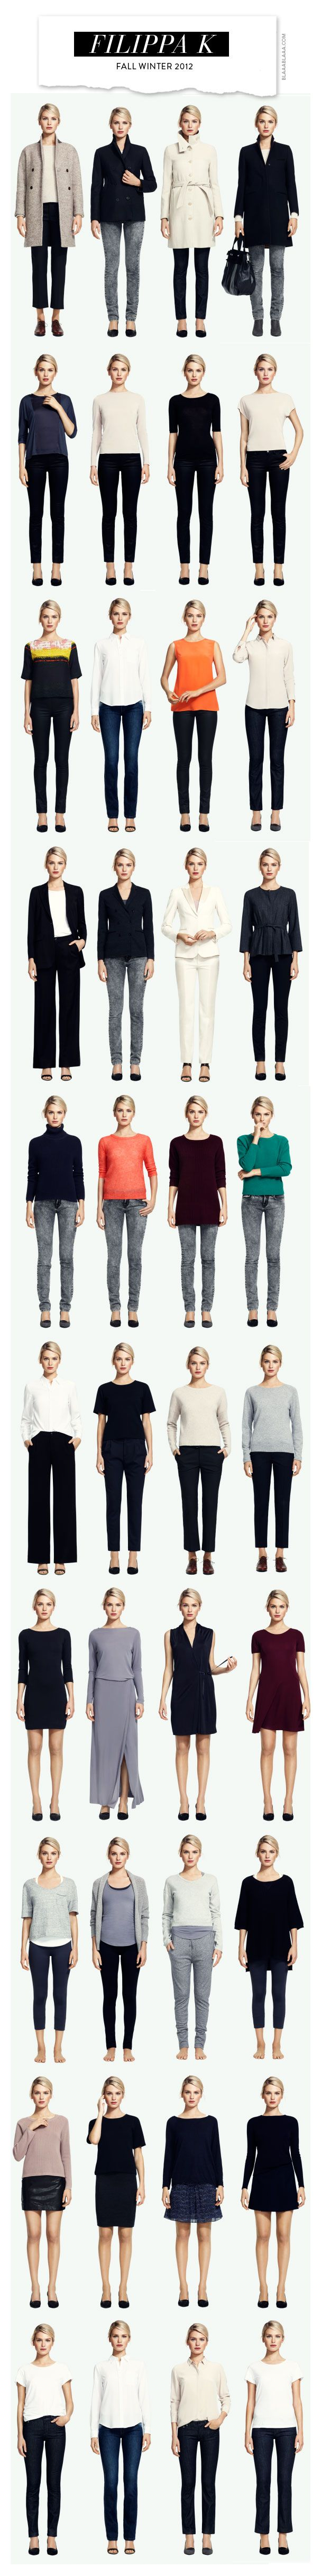 Plain & simple: basic 2-piece dressing - embellish for individuality. Fall-Winter 2012, by Filippa K.